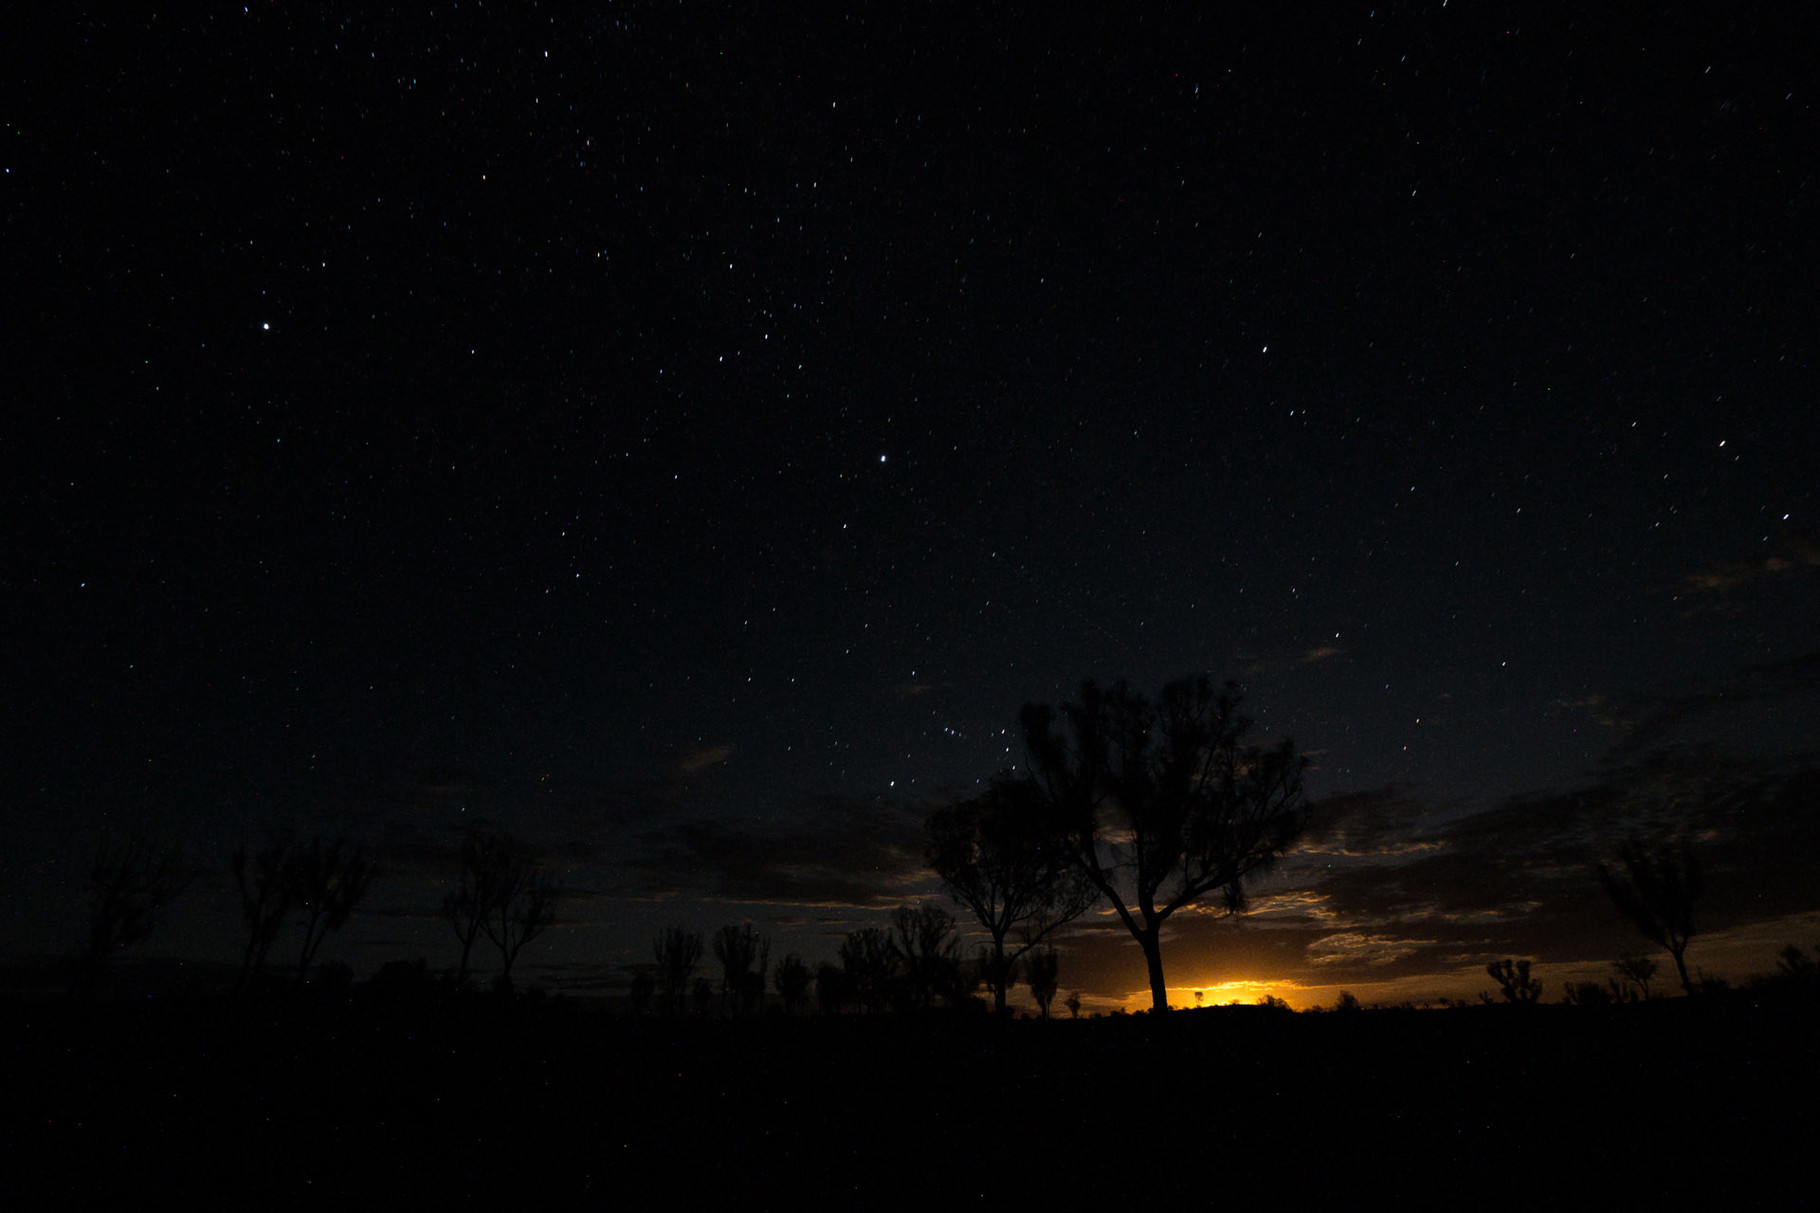 Millions at stars and the moonset, seen during camping in the bush (aperture: 7.1, shutter speed: 50 seconds, Iso 800)